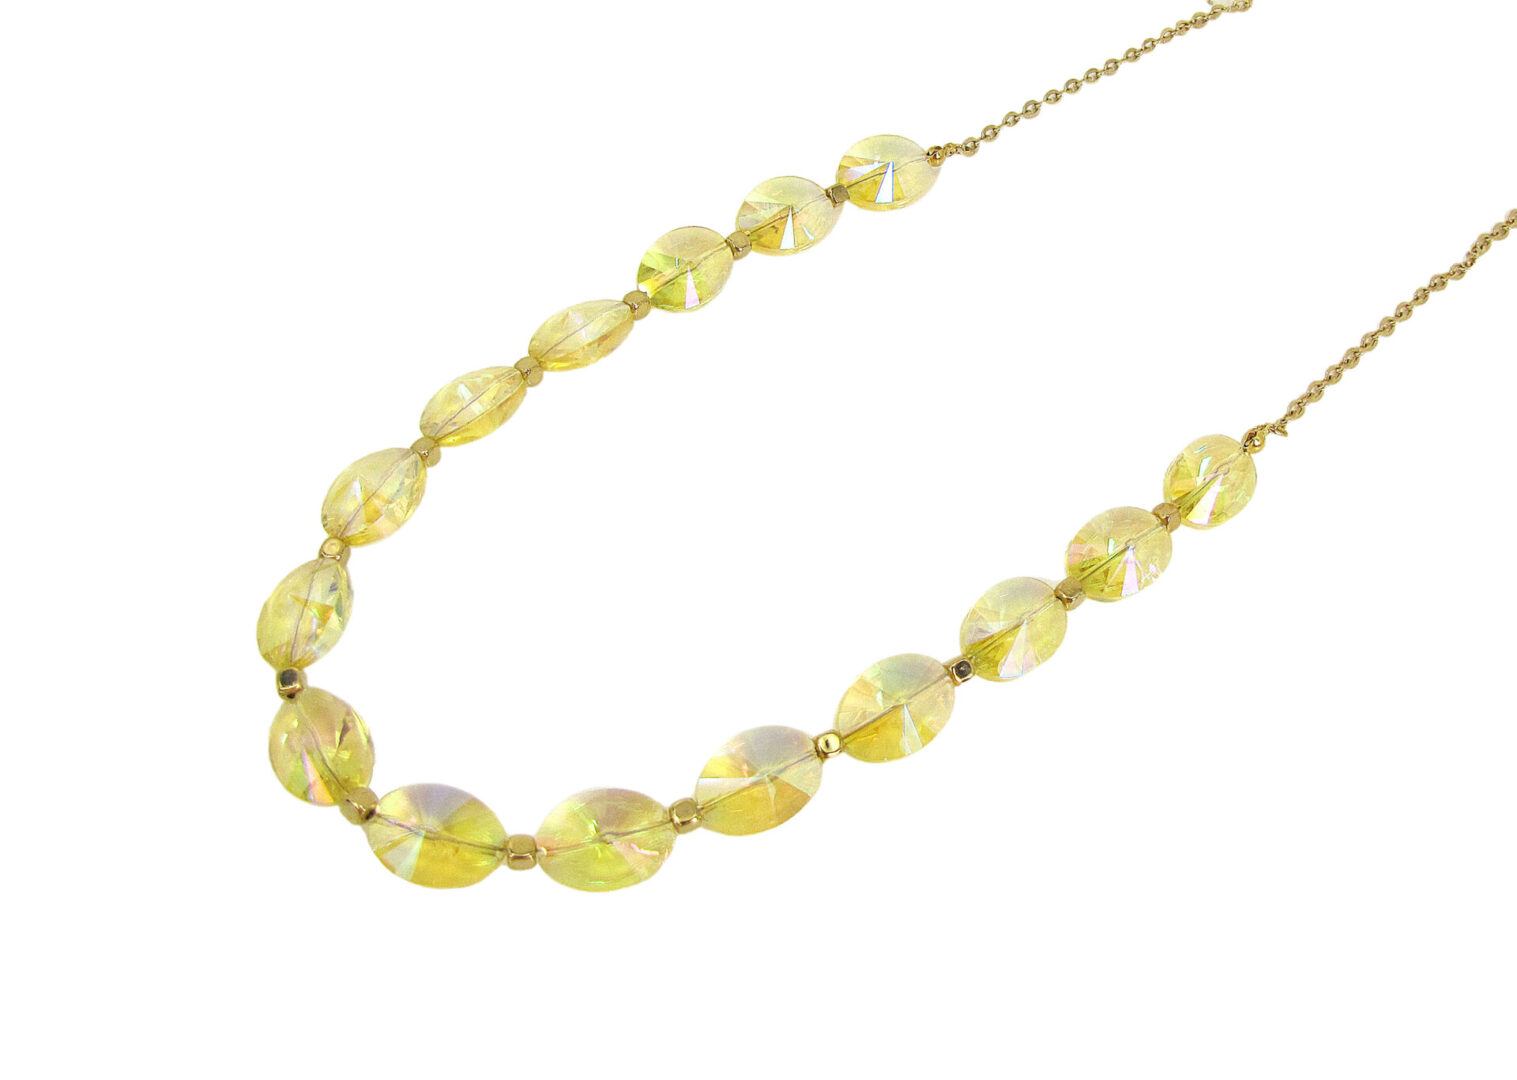 necklace with yellow beads and crystals